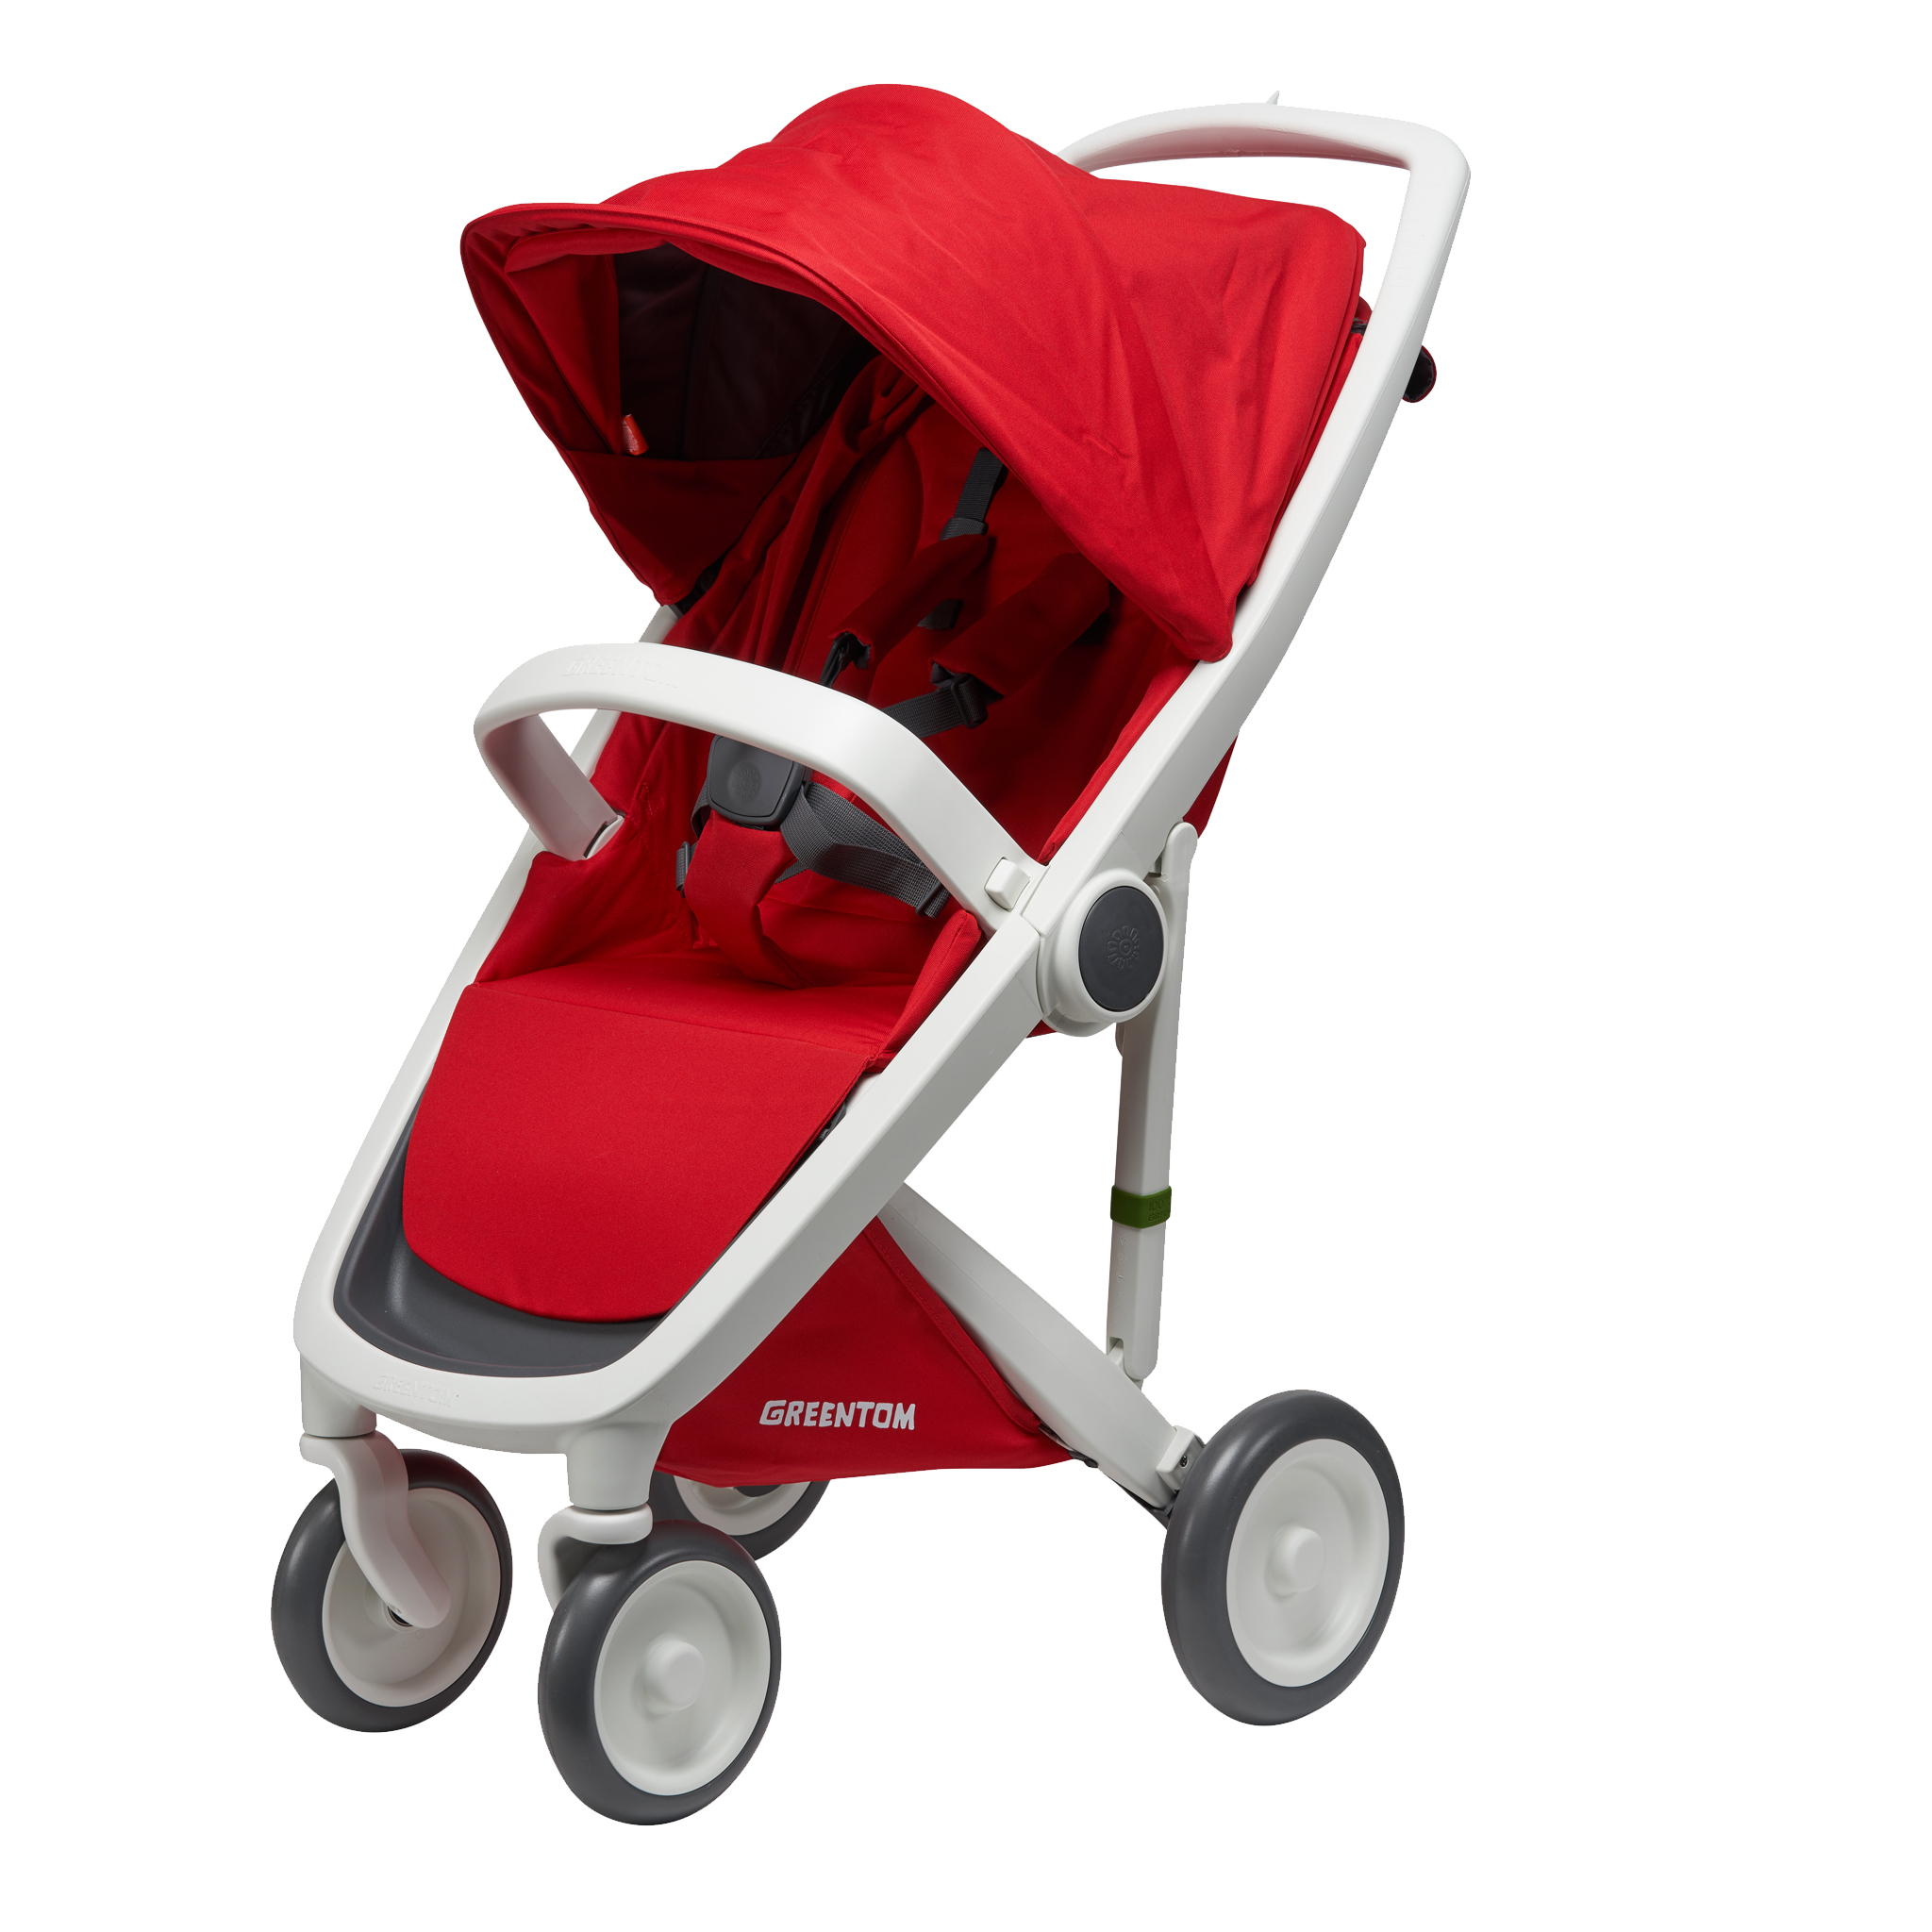 Greentom Baby Stroller    The Greentom frames are made of post consumer waste and the fabric is made of recycled soft drink bottles (PET). The stroller is made out of 97 % recycled plastic. The mattress of the Carrycot is 100% natural: made of wool, flax and organic cotton.